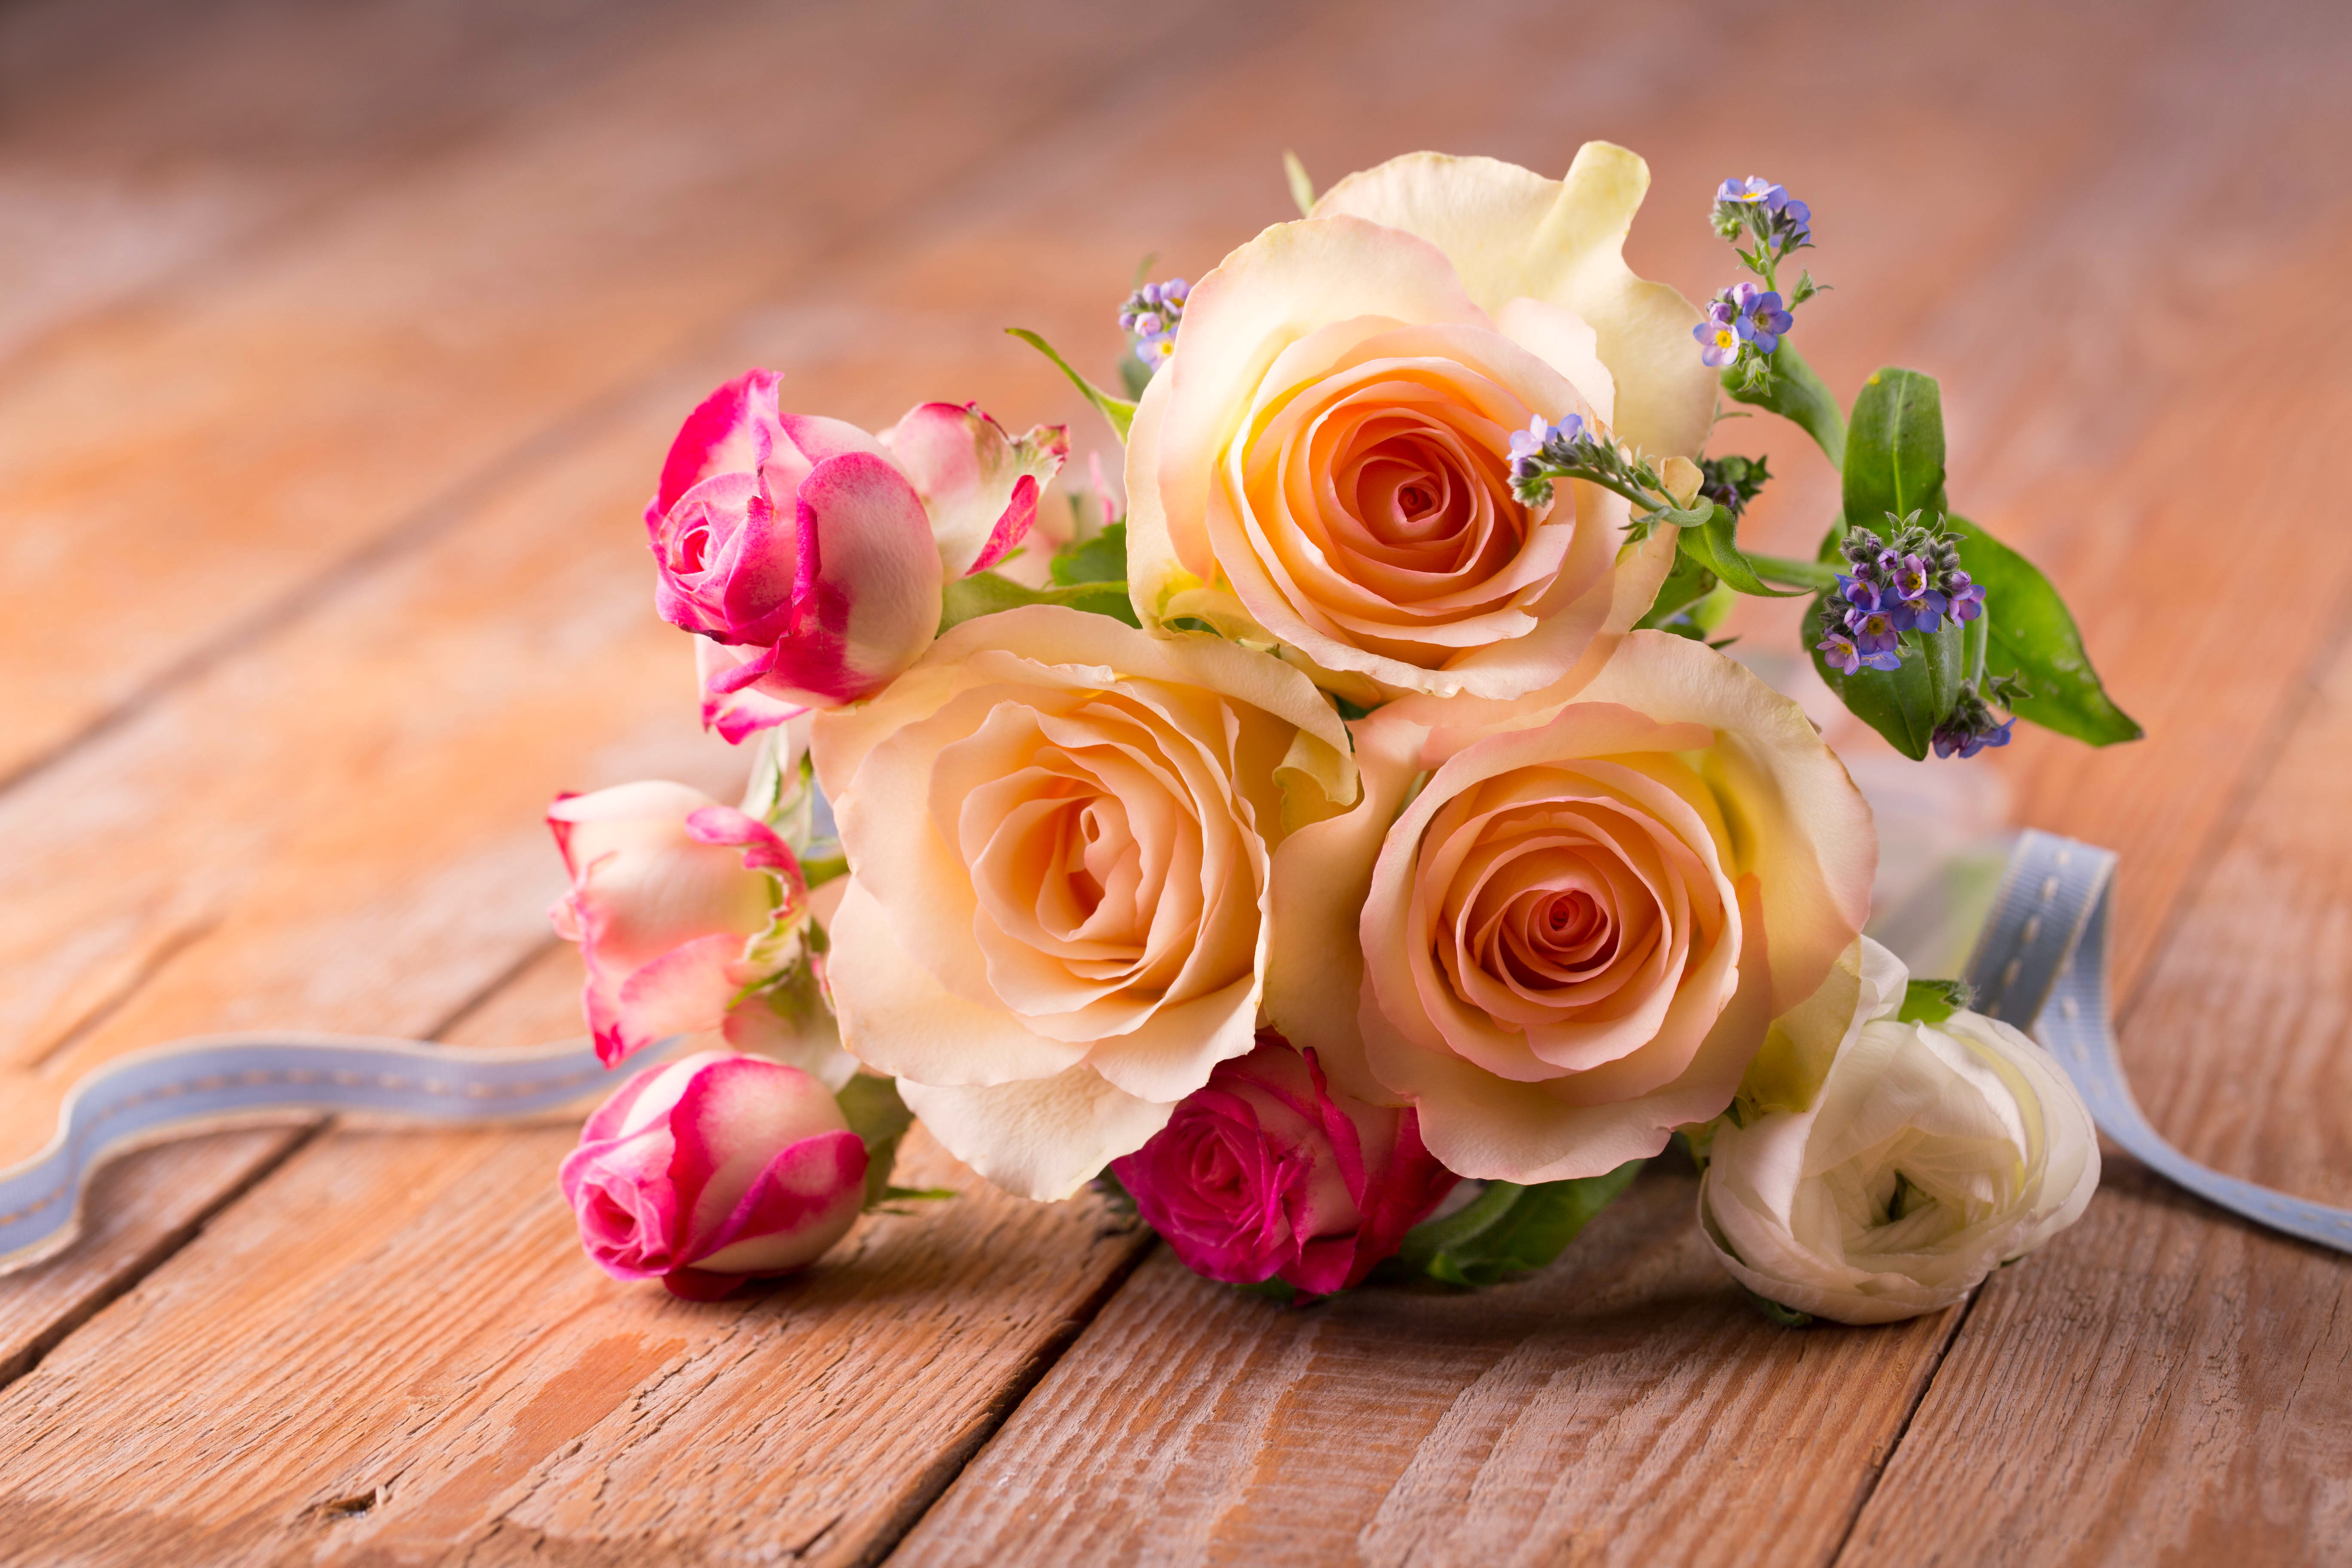 Bouquet of roses on wooden board 56169